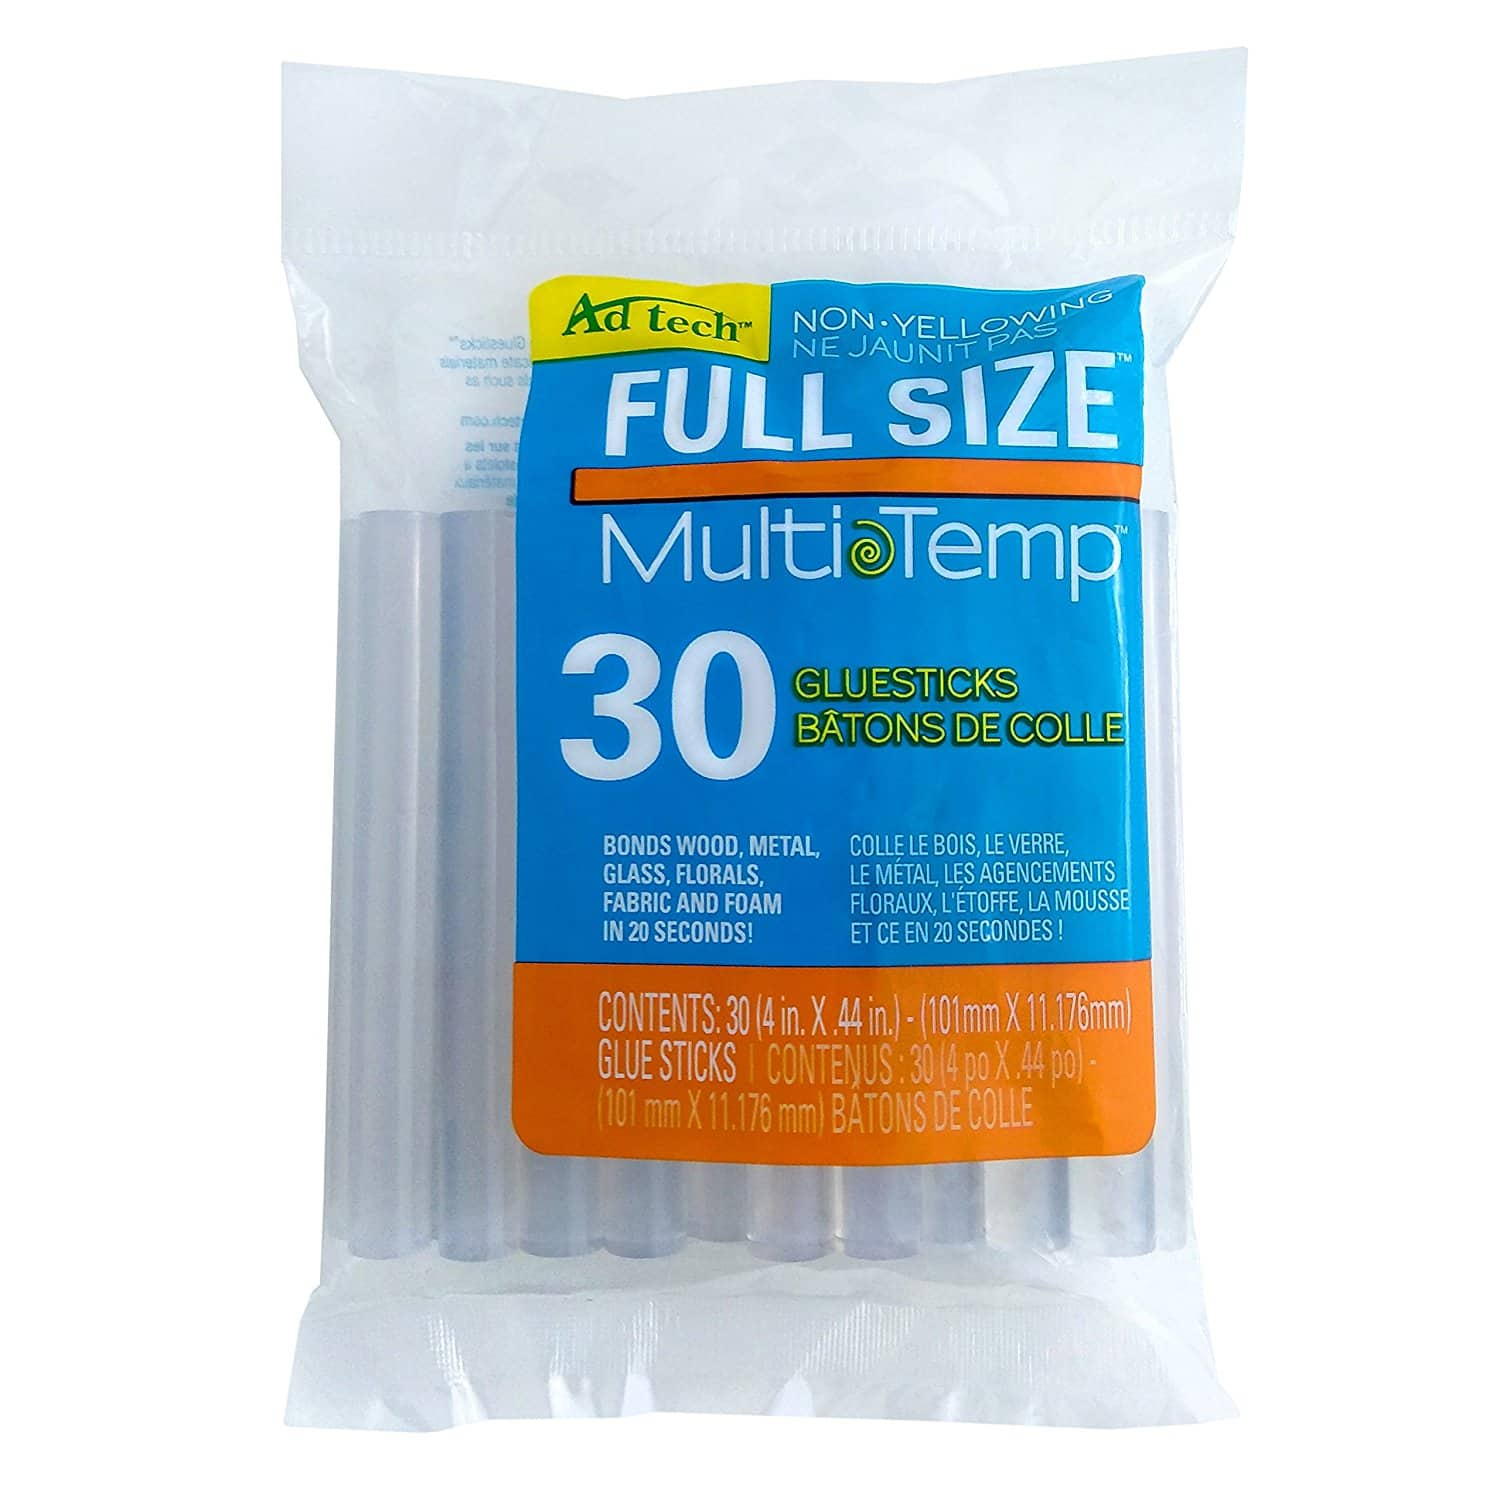 Multi Temp Full Size Glue stick, 4-Inch, 30-Pack at its best price - $2.78 (or $2.22 if 20% coupon visibe, it maybe user dependant) @amazon as Add-on item